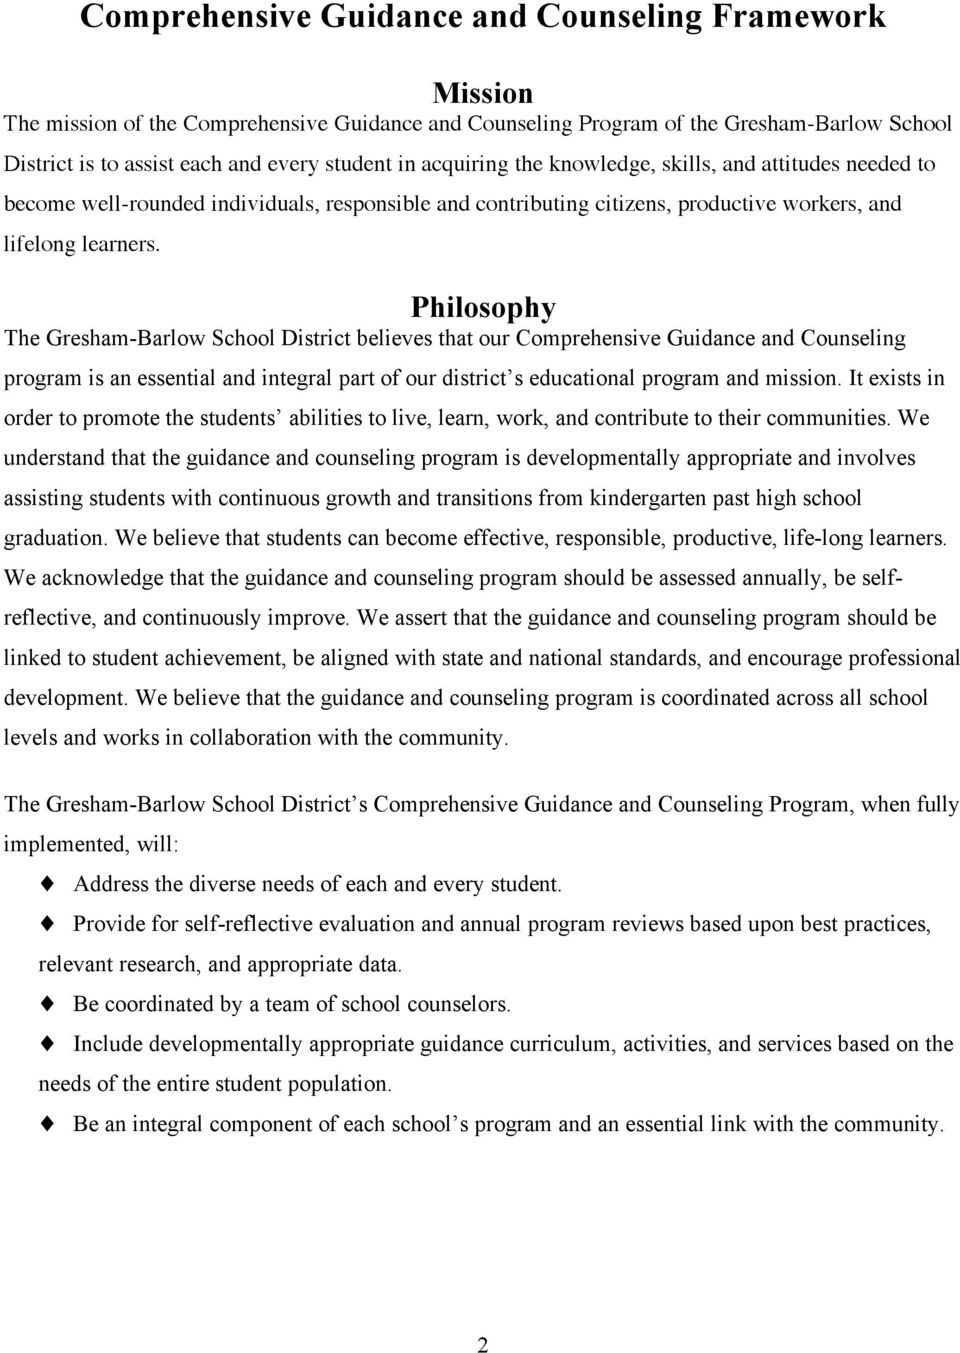 Philosophy The Gresham-Barlow School District believes that our Comprehensive Guidance and Counseling program is an essential and integral part of our district s educational program and mission.